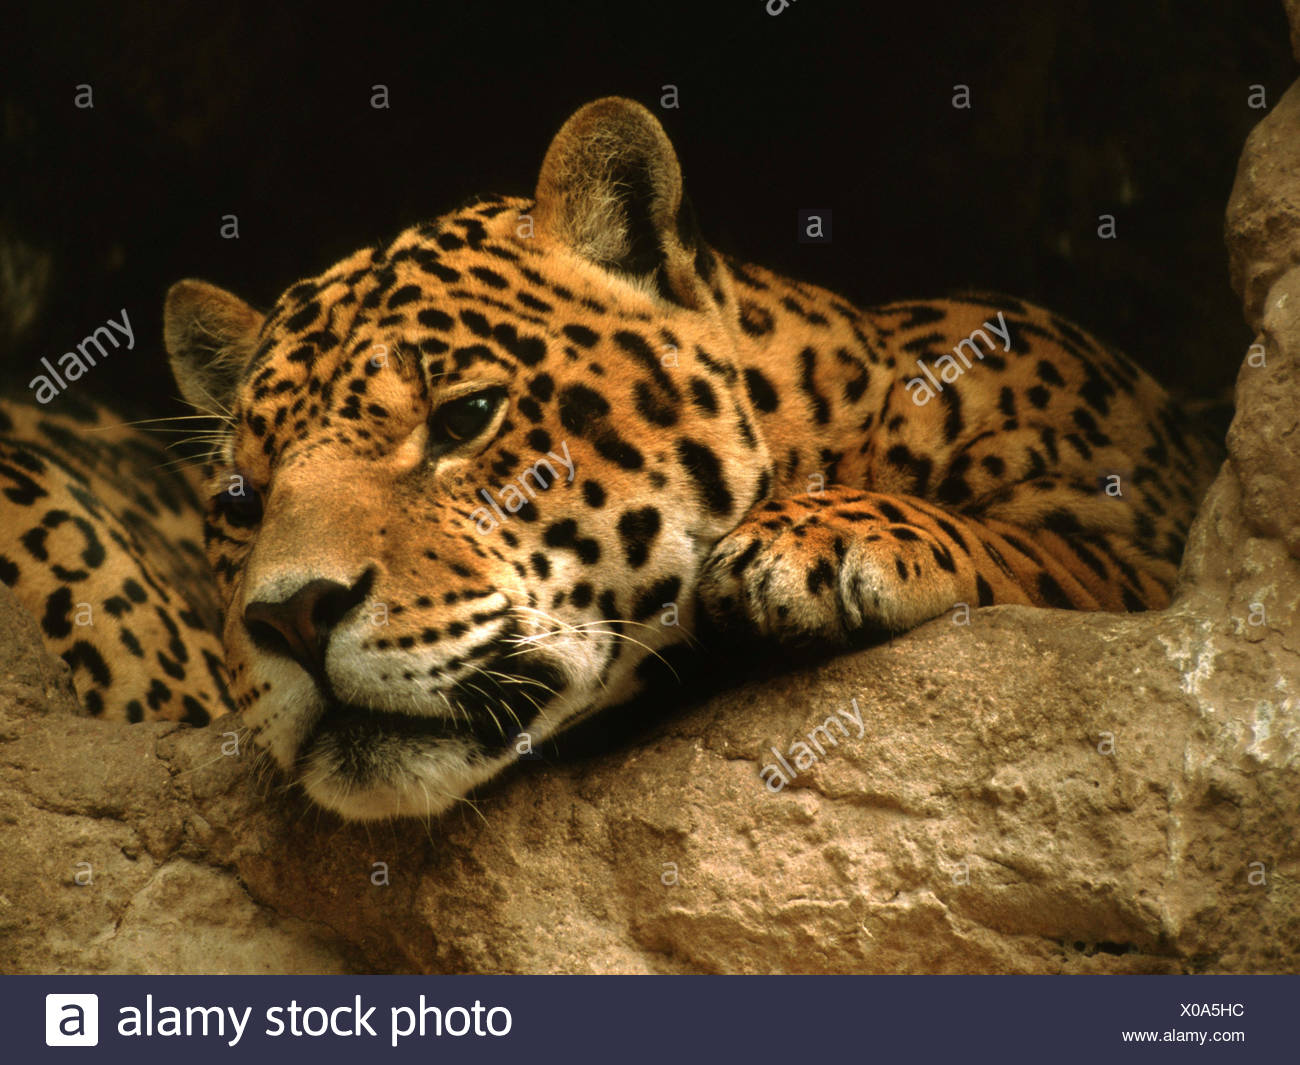 jaguar (Panthera onca), portrait - Stock Image